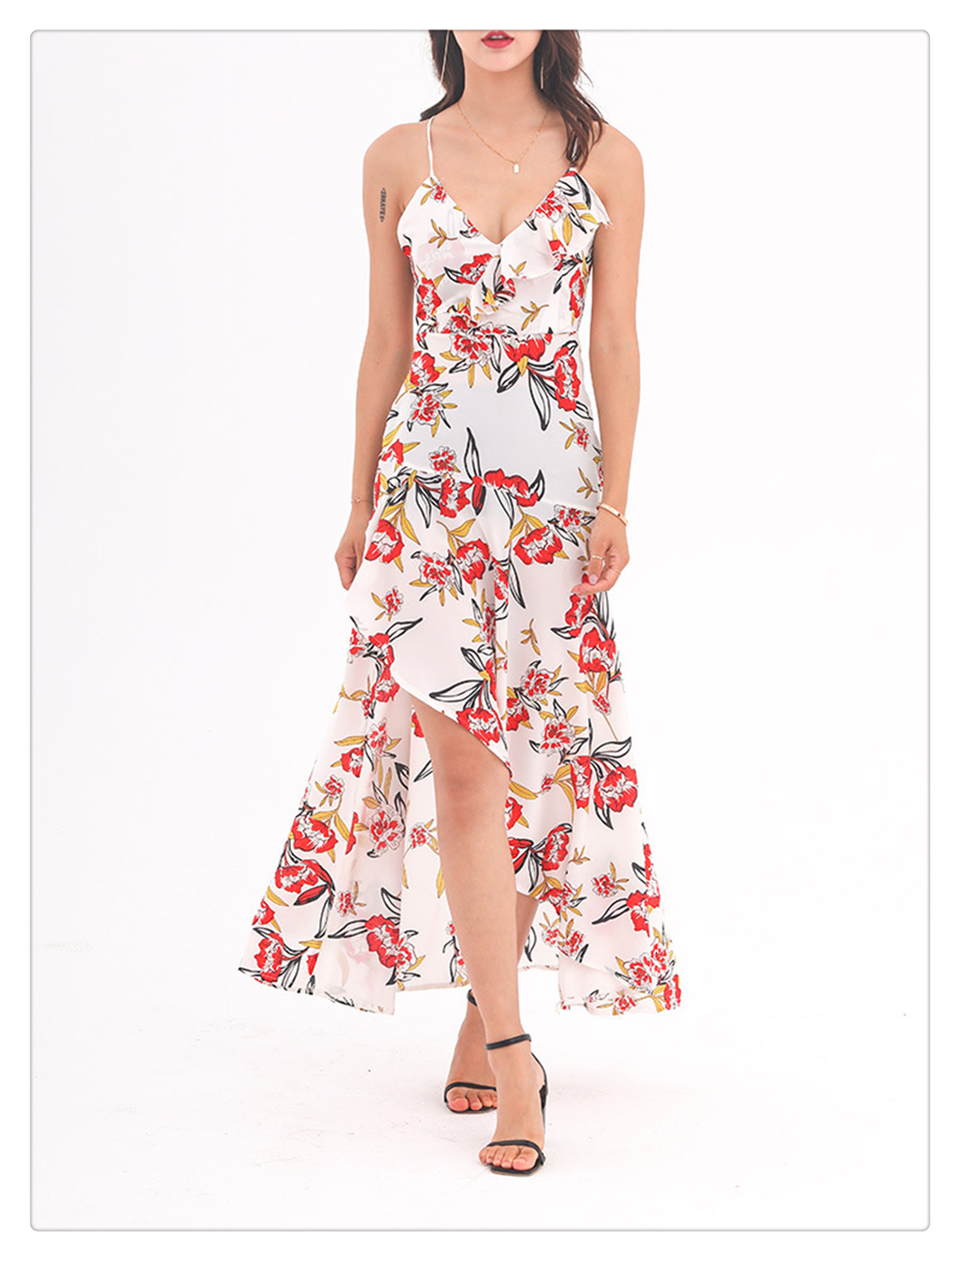 1f65c537f1 Women Sexy Floral Print Backless Dress Spaghetti Strap V Neck ...